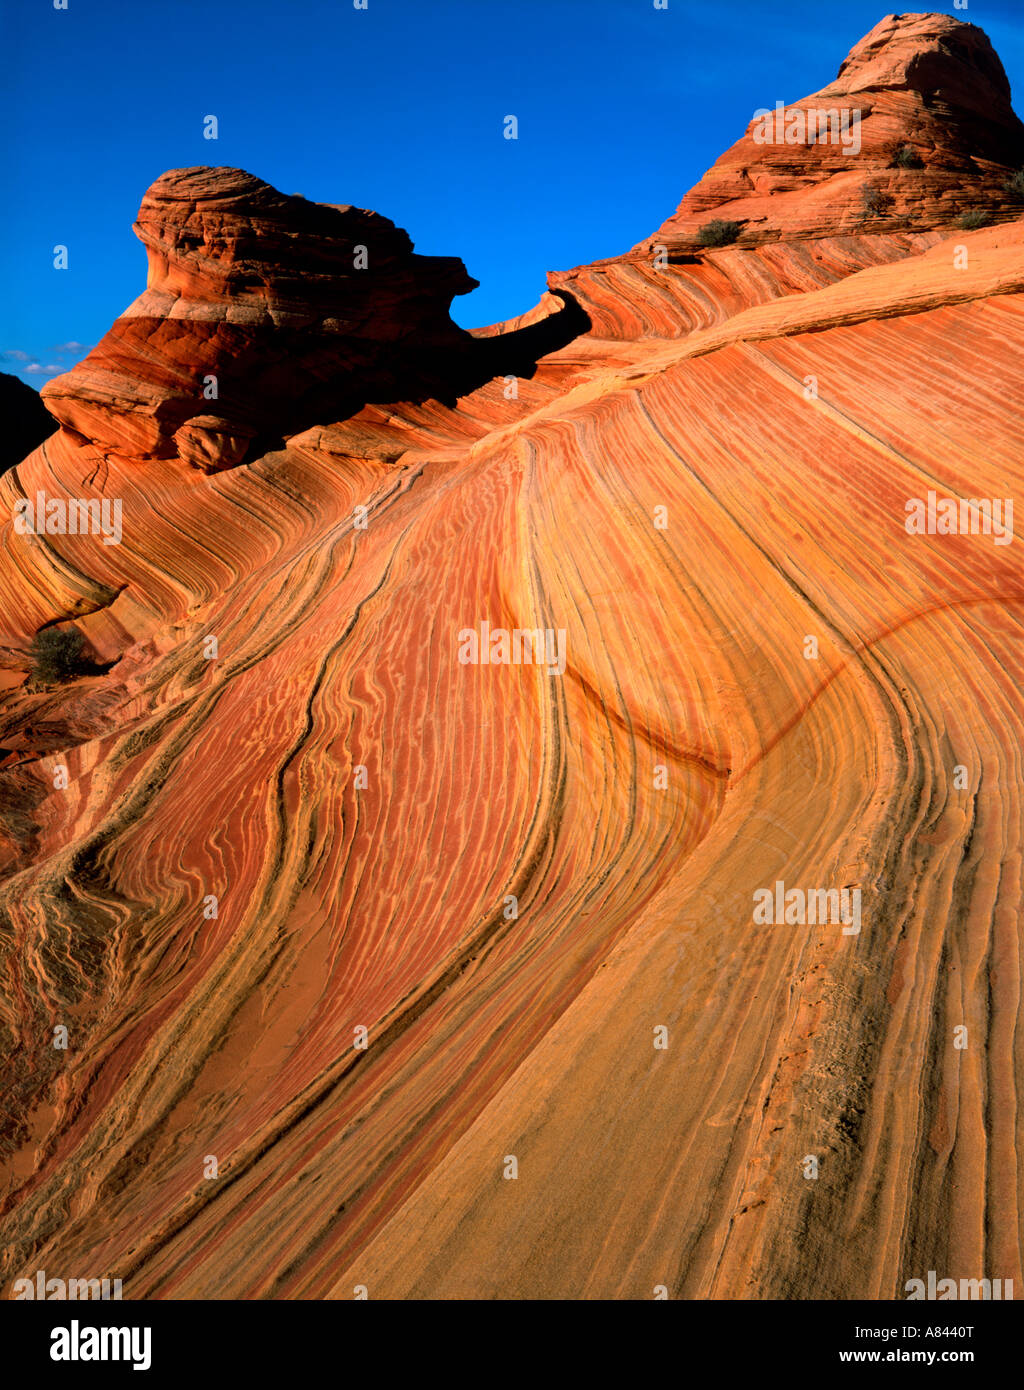 Parallel lines in one of the erosional rock formations at Coyote Buttes on the north edge of the Paria Canyon Vermilion Stock Photo